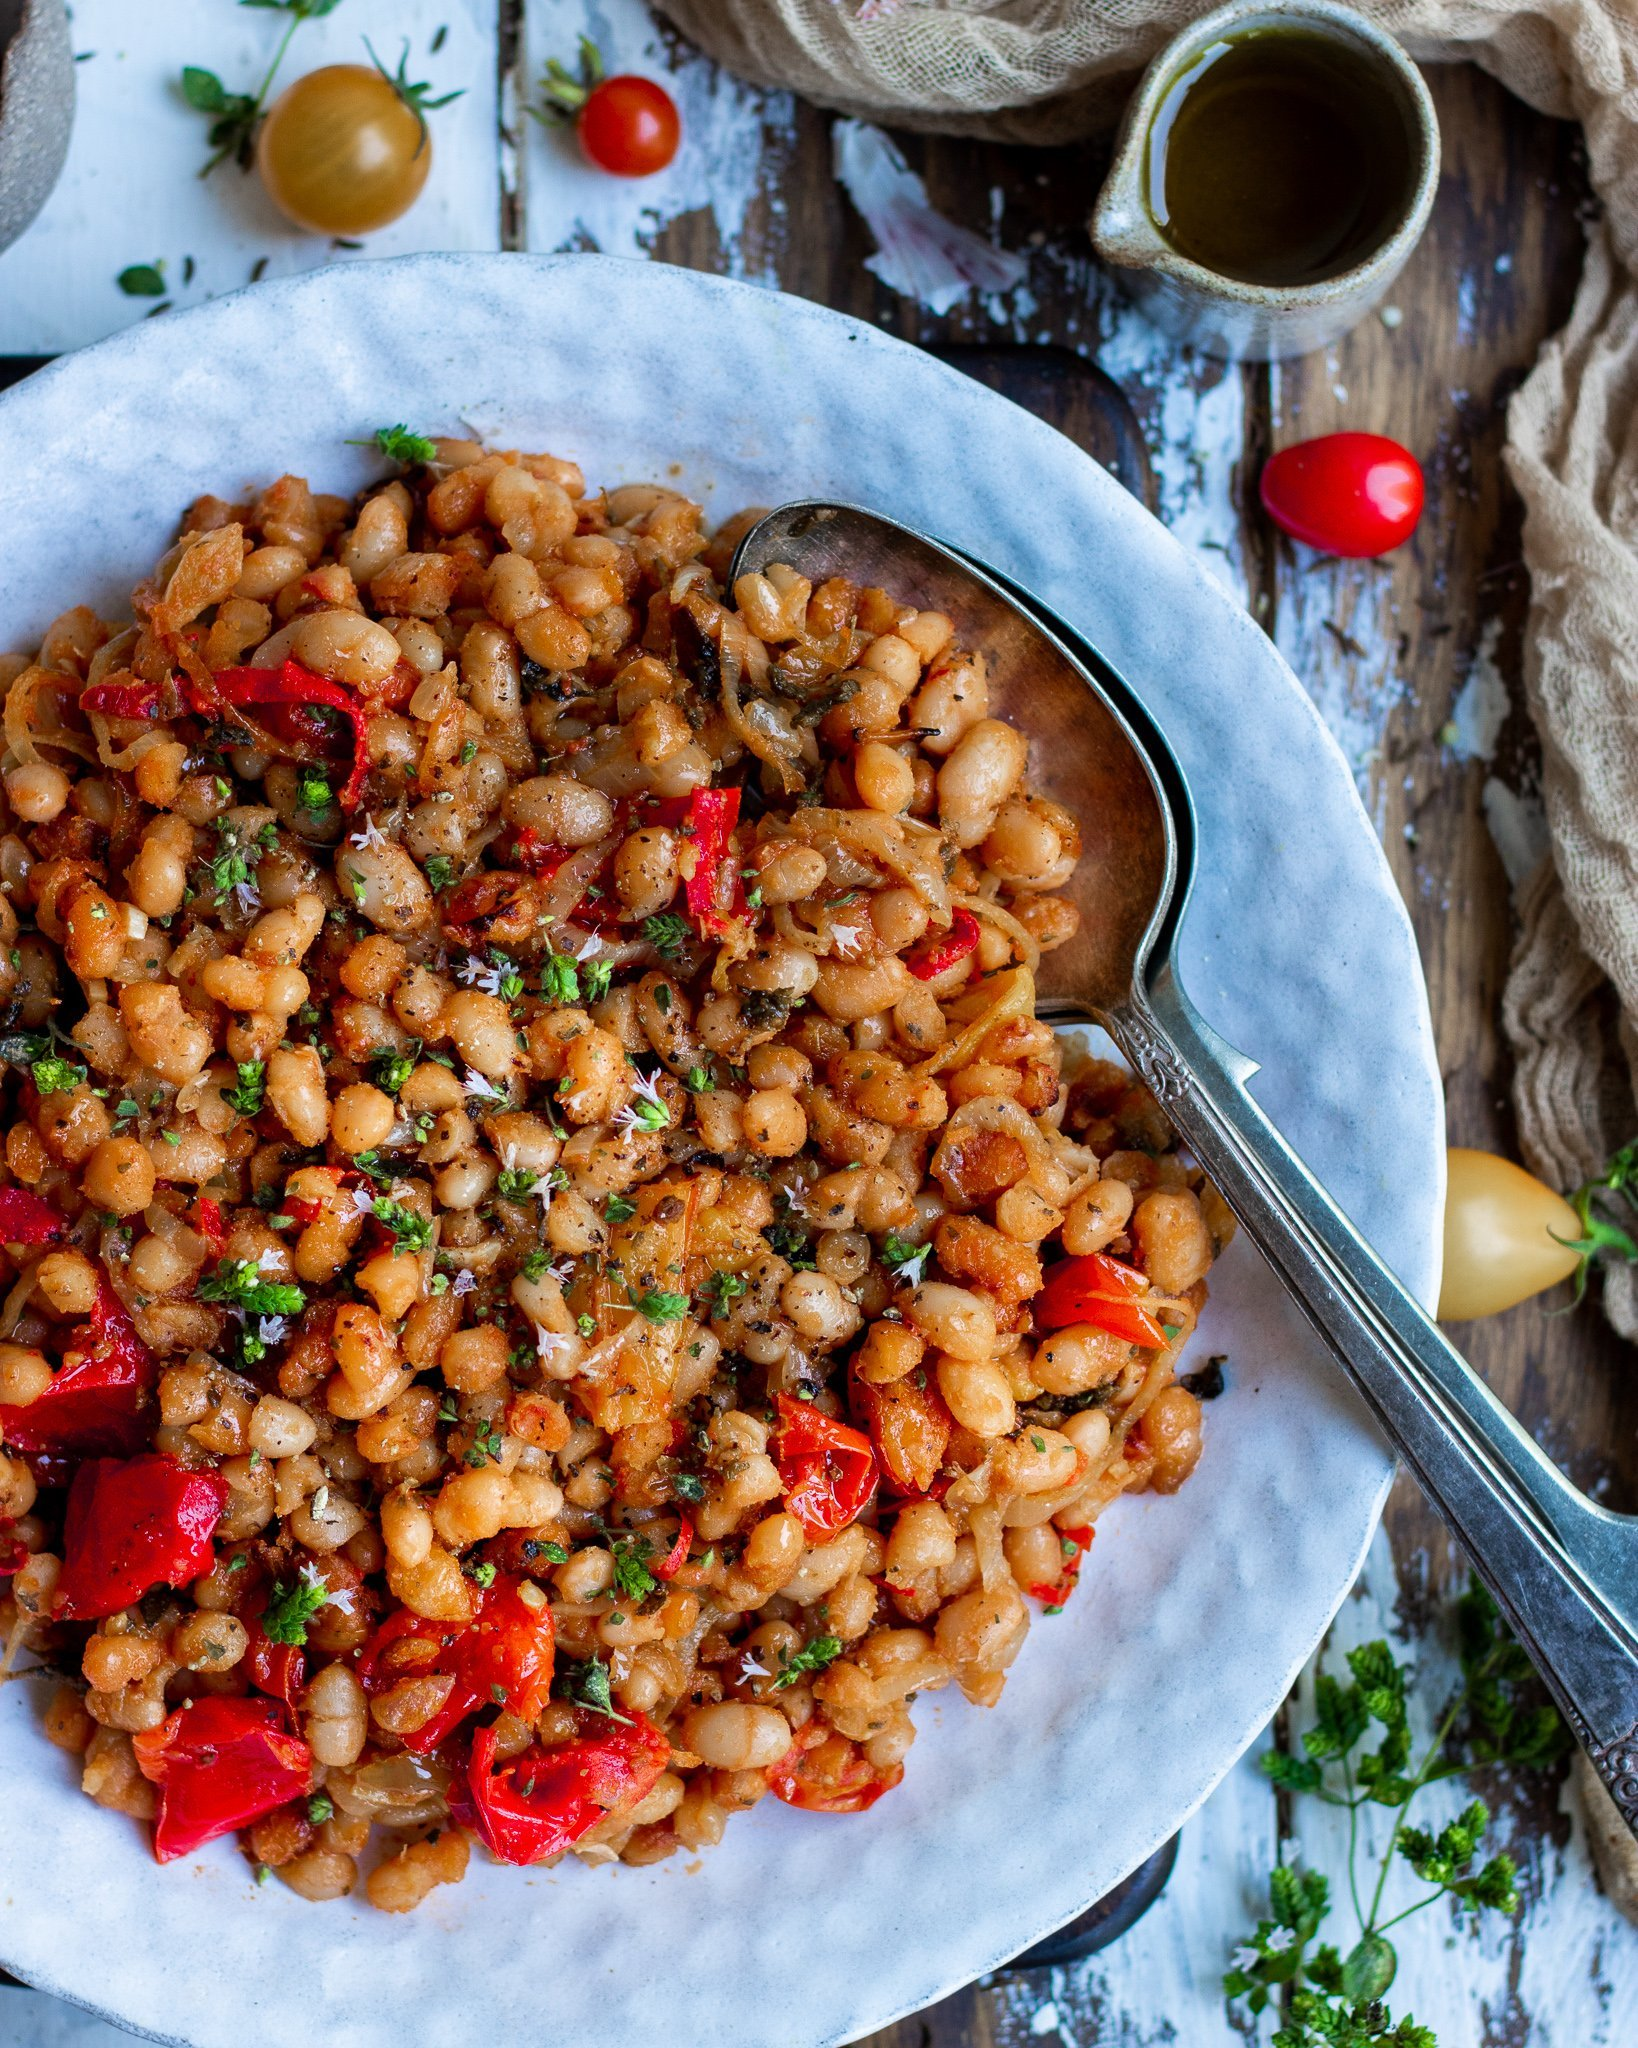 Summer Roasted White Beans